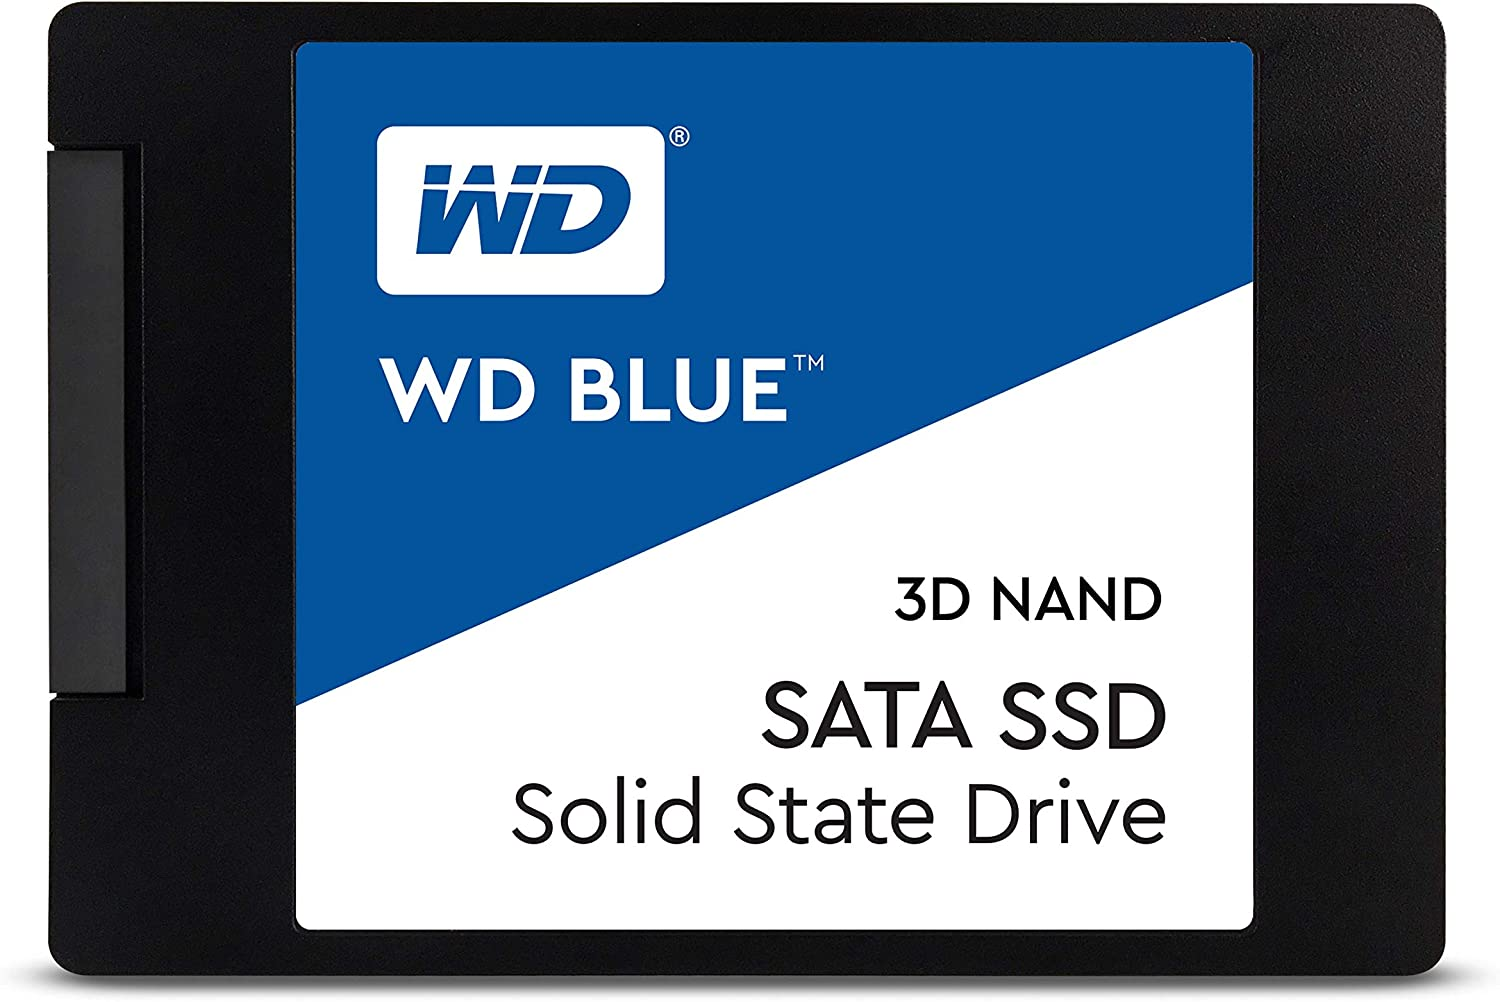 "WD Blue 3D NAND 250GB Internal PC SSD - SATA III 6 Gb/s, 2.5""/7mm, Up to 560 MB/s - WDS250G2B0A"